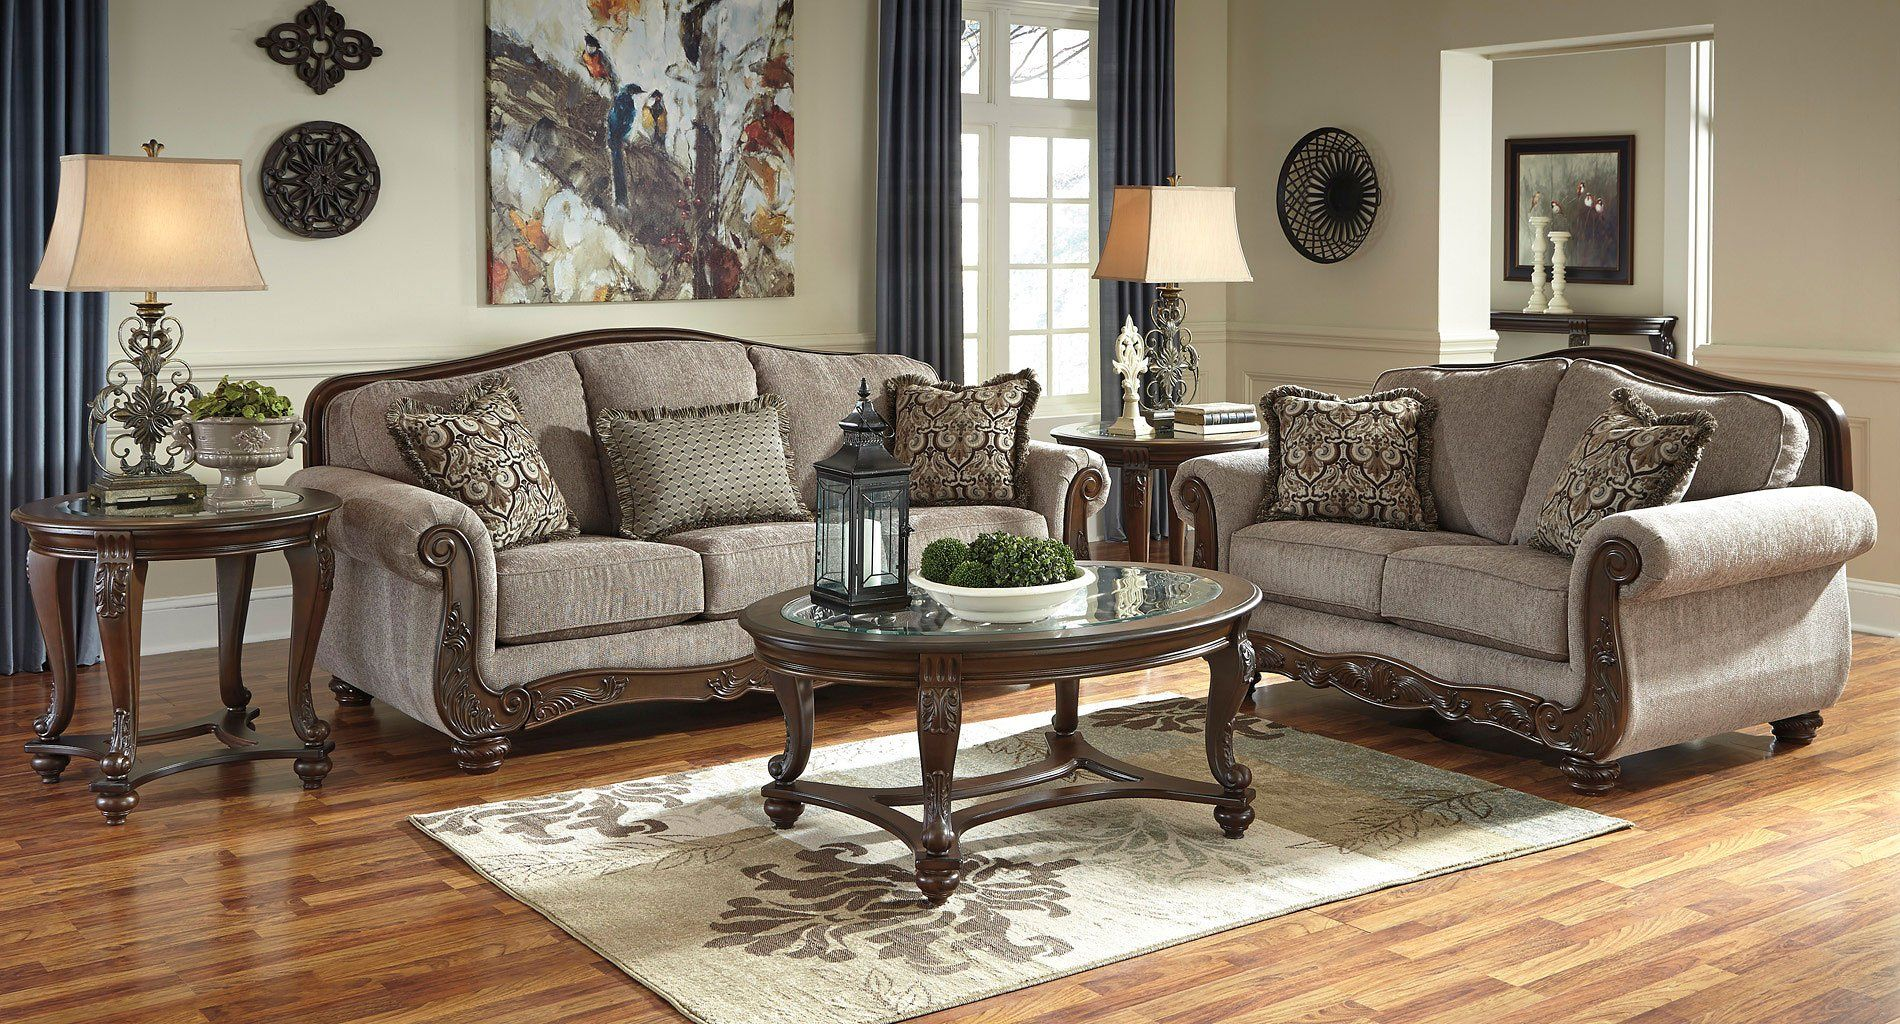 Style And Substance Isn T Just A Catch Phrase In The Cecilyn Cocoa Living Room Set By Signature Design Living Room Sets Living Room Designs Couch And Loveseat